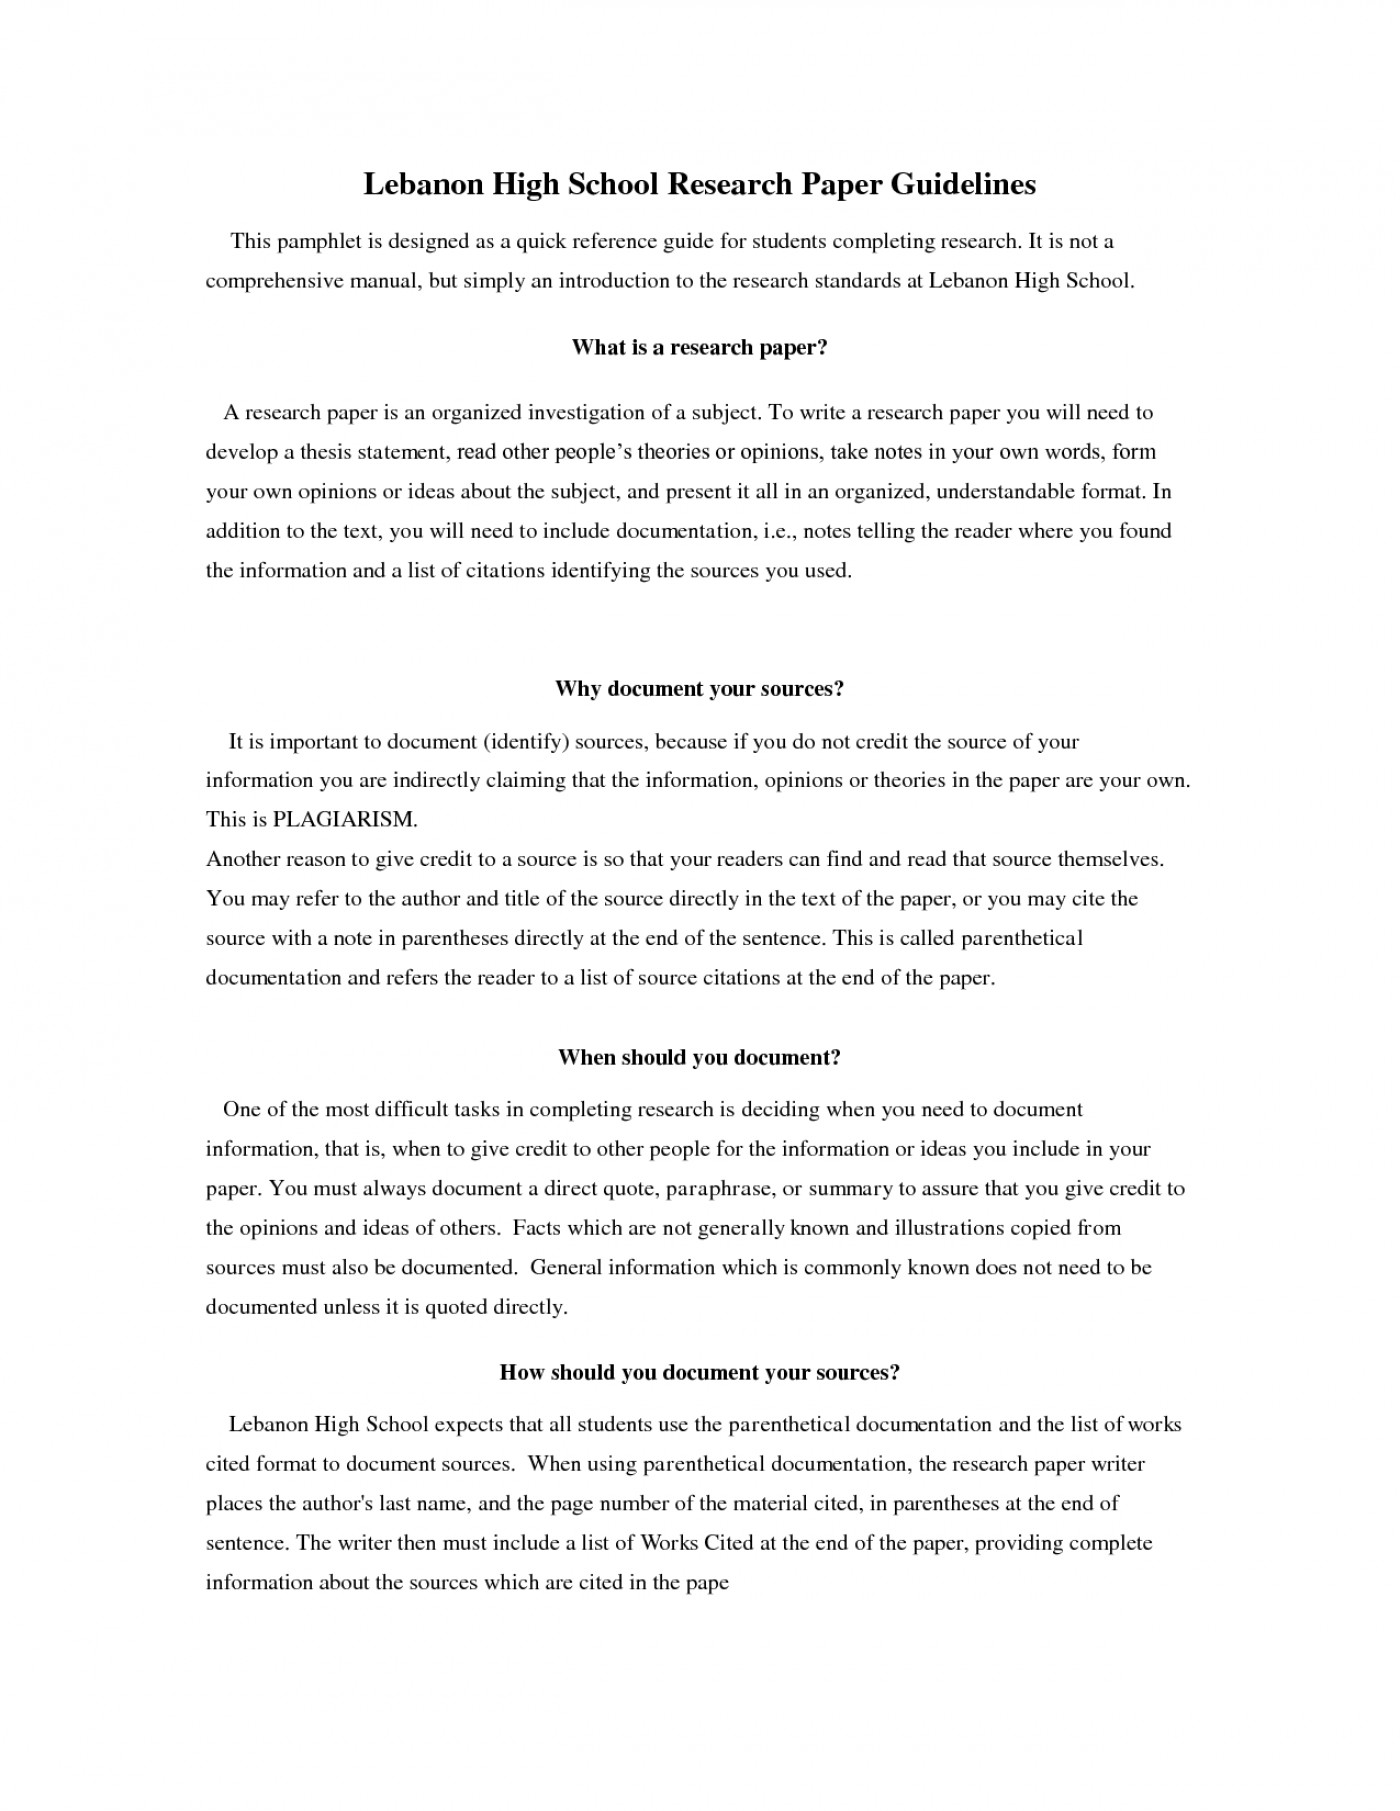 024 Research Paper Good Singular Topic Topics 2019 Ideas In Business And Finance For College Students 1400